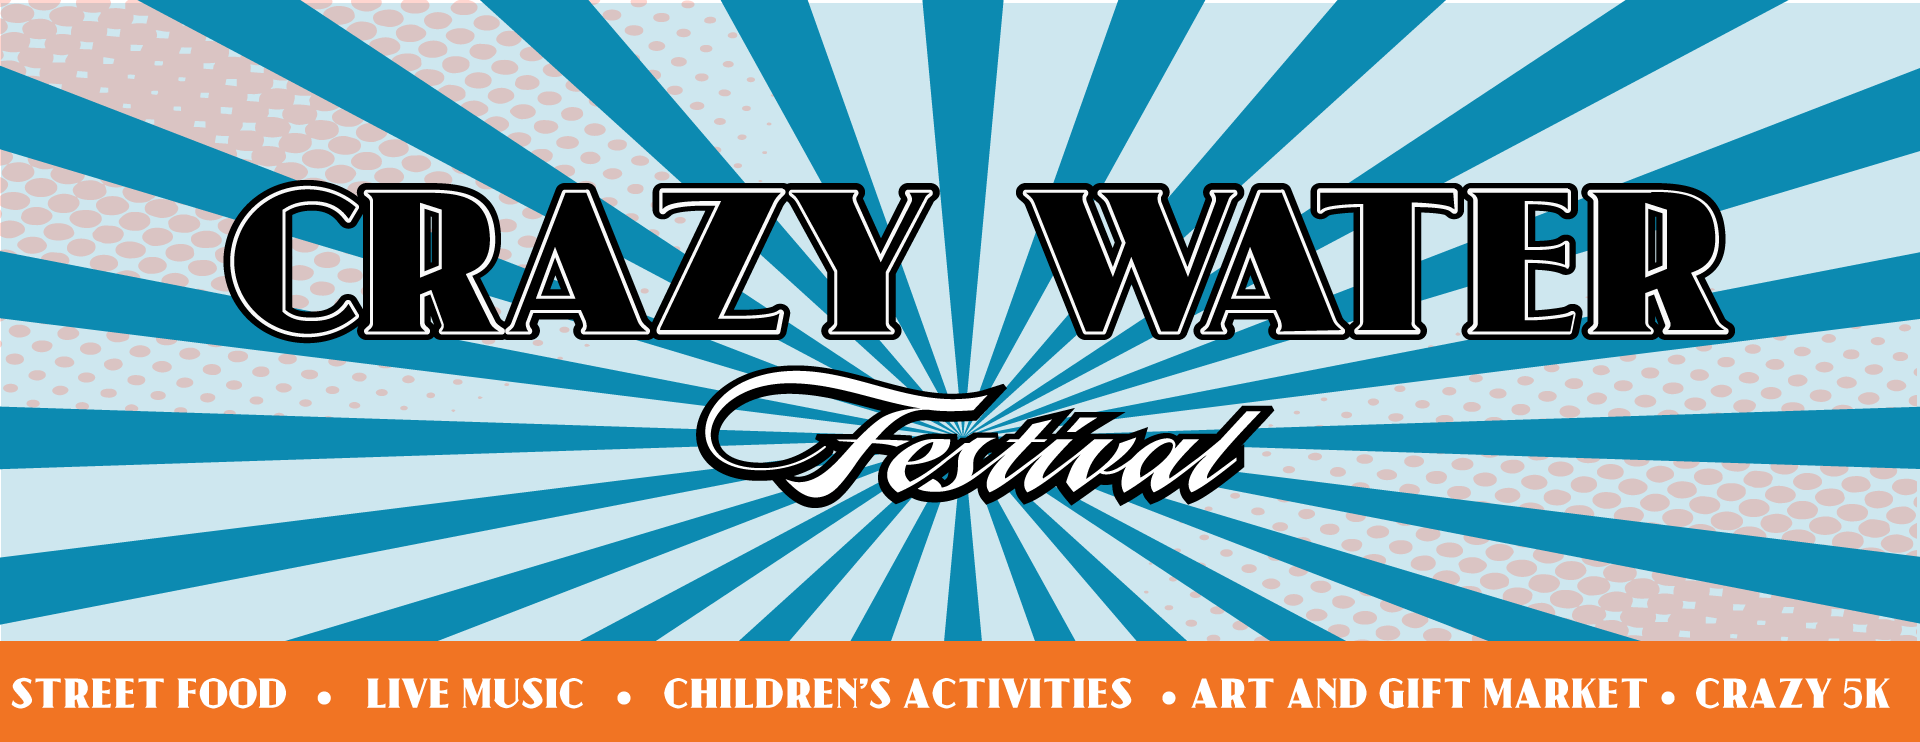 Crazy Water Festival